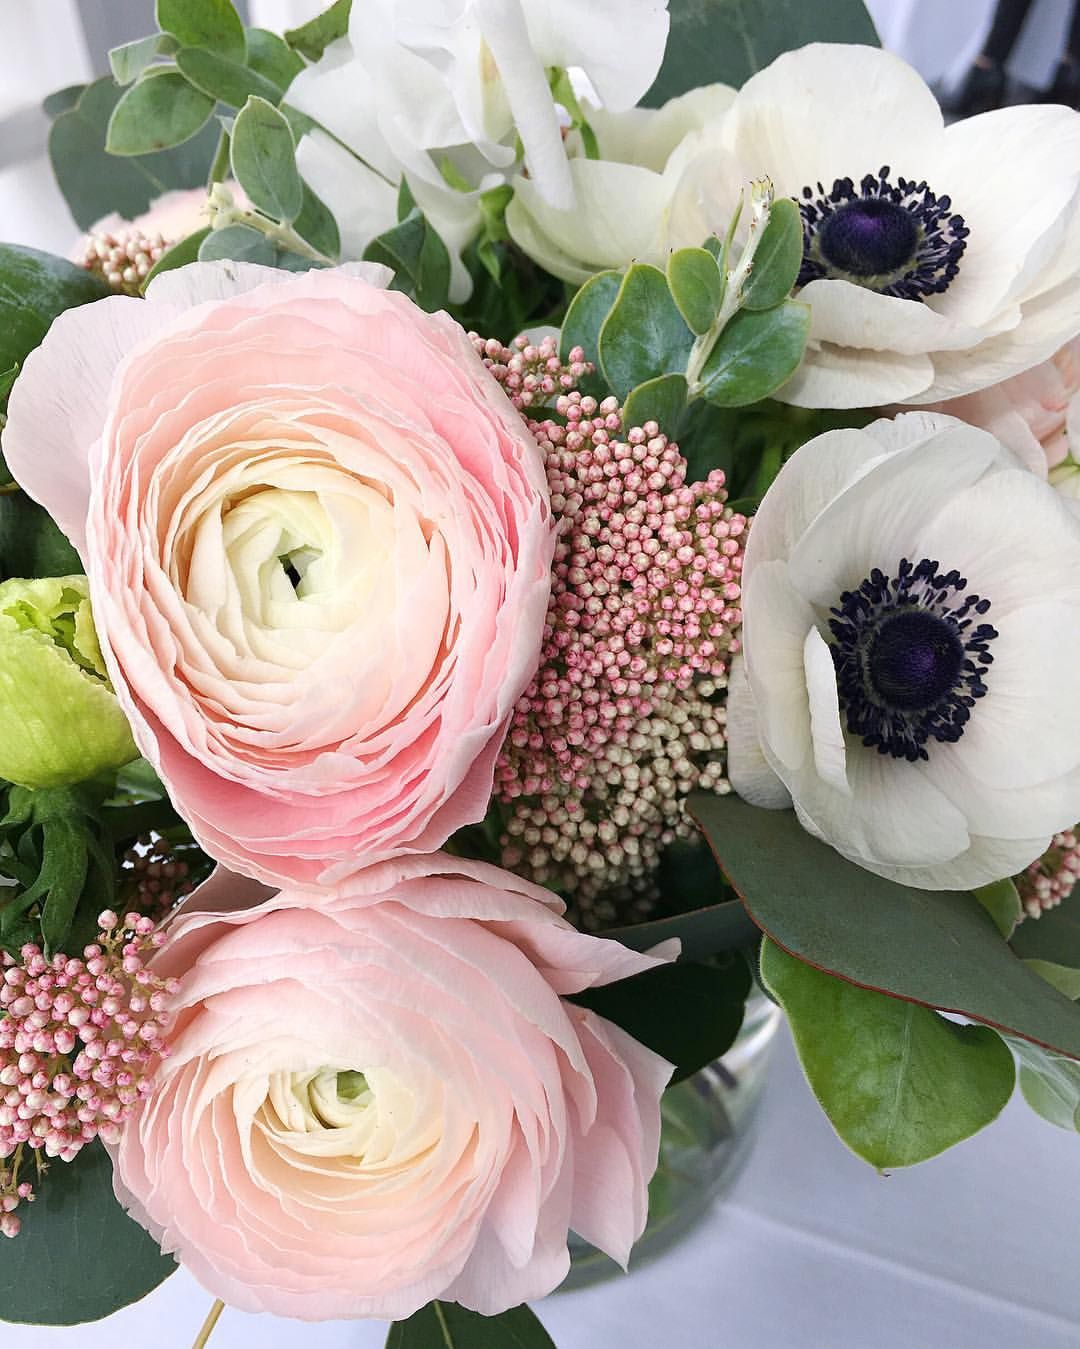 Such a pretty spring arrangement we love the ranunculus and we love the ranunculus and anemones combo the pale pink flowers pairs perfectly with the black and white anemones mightylinksfo